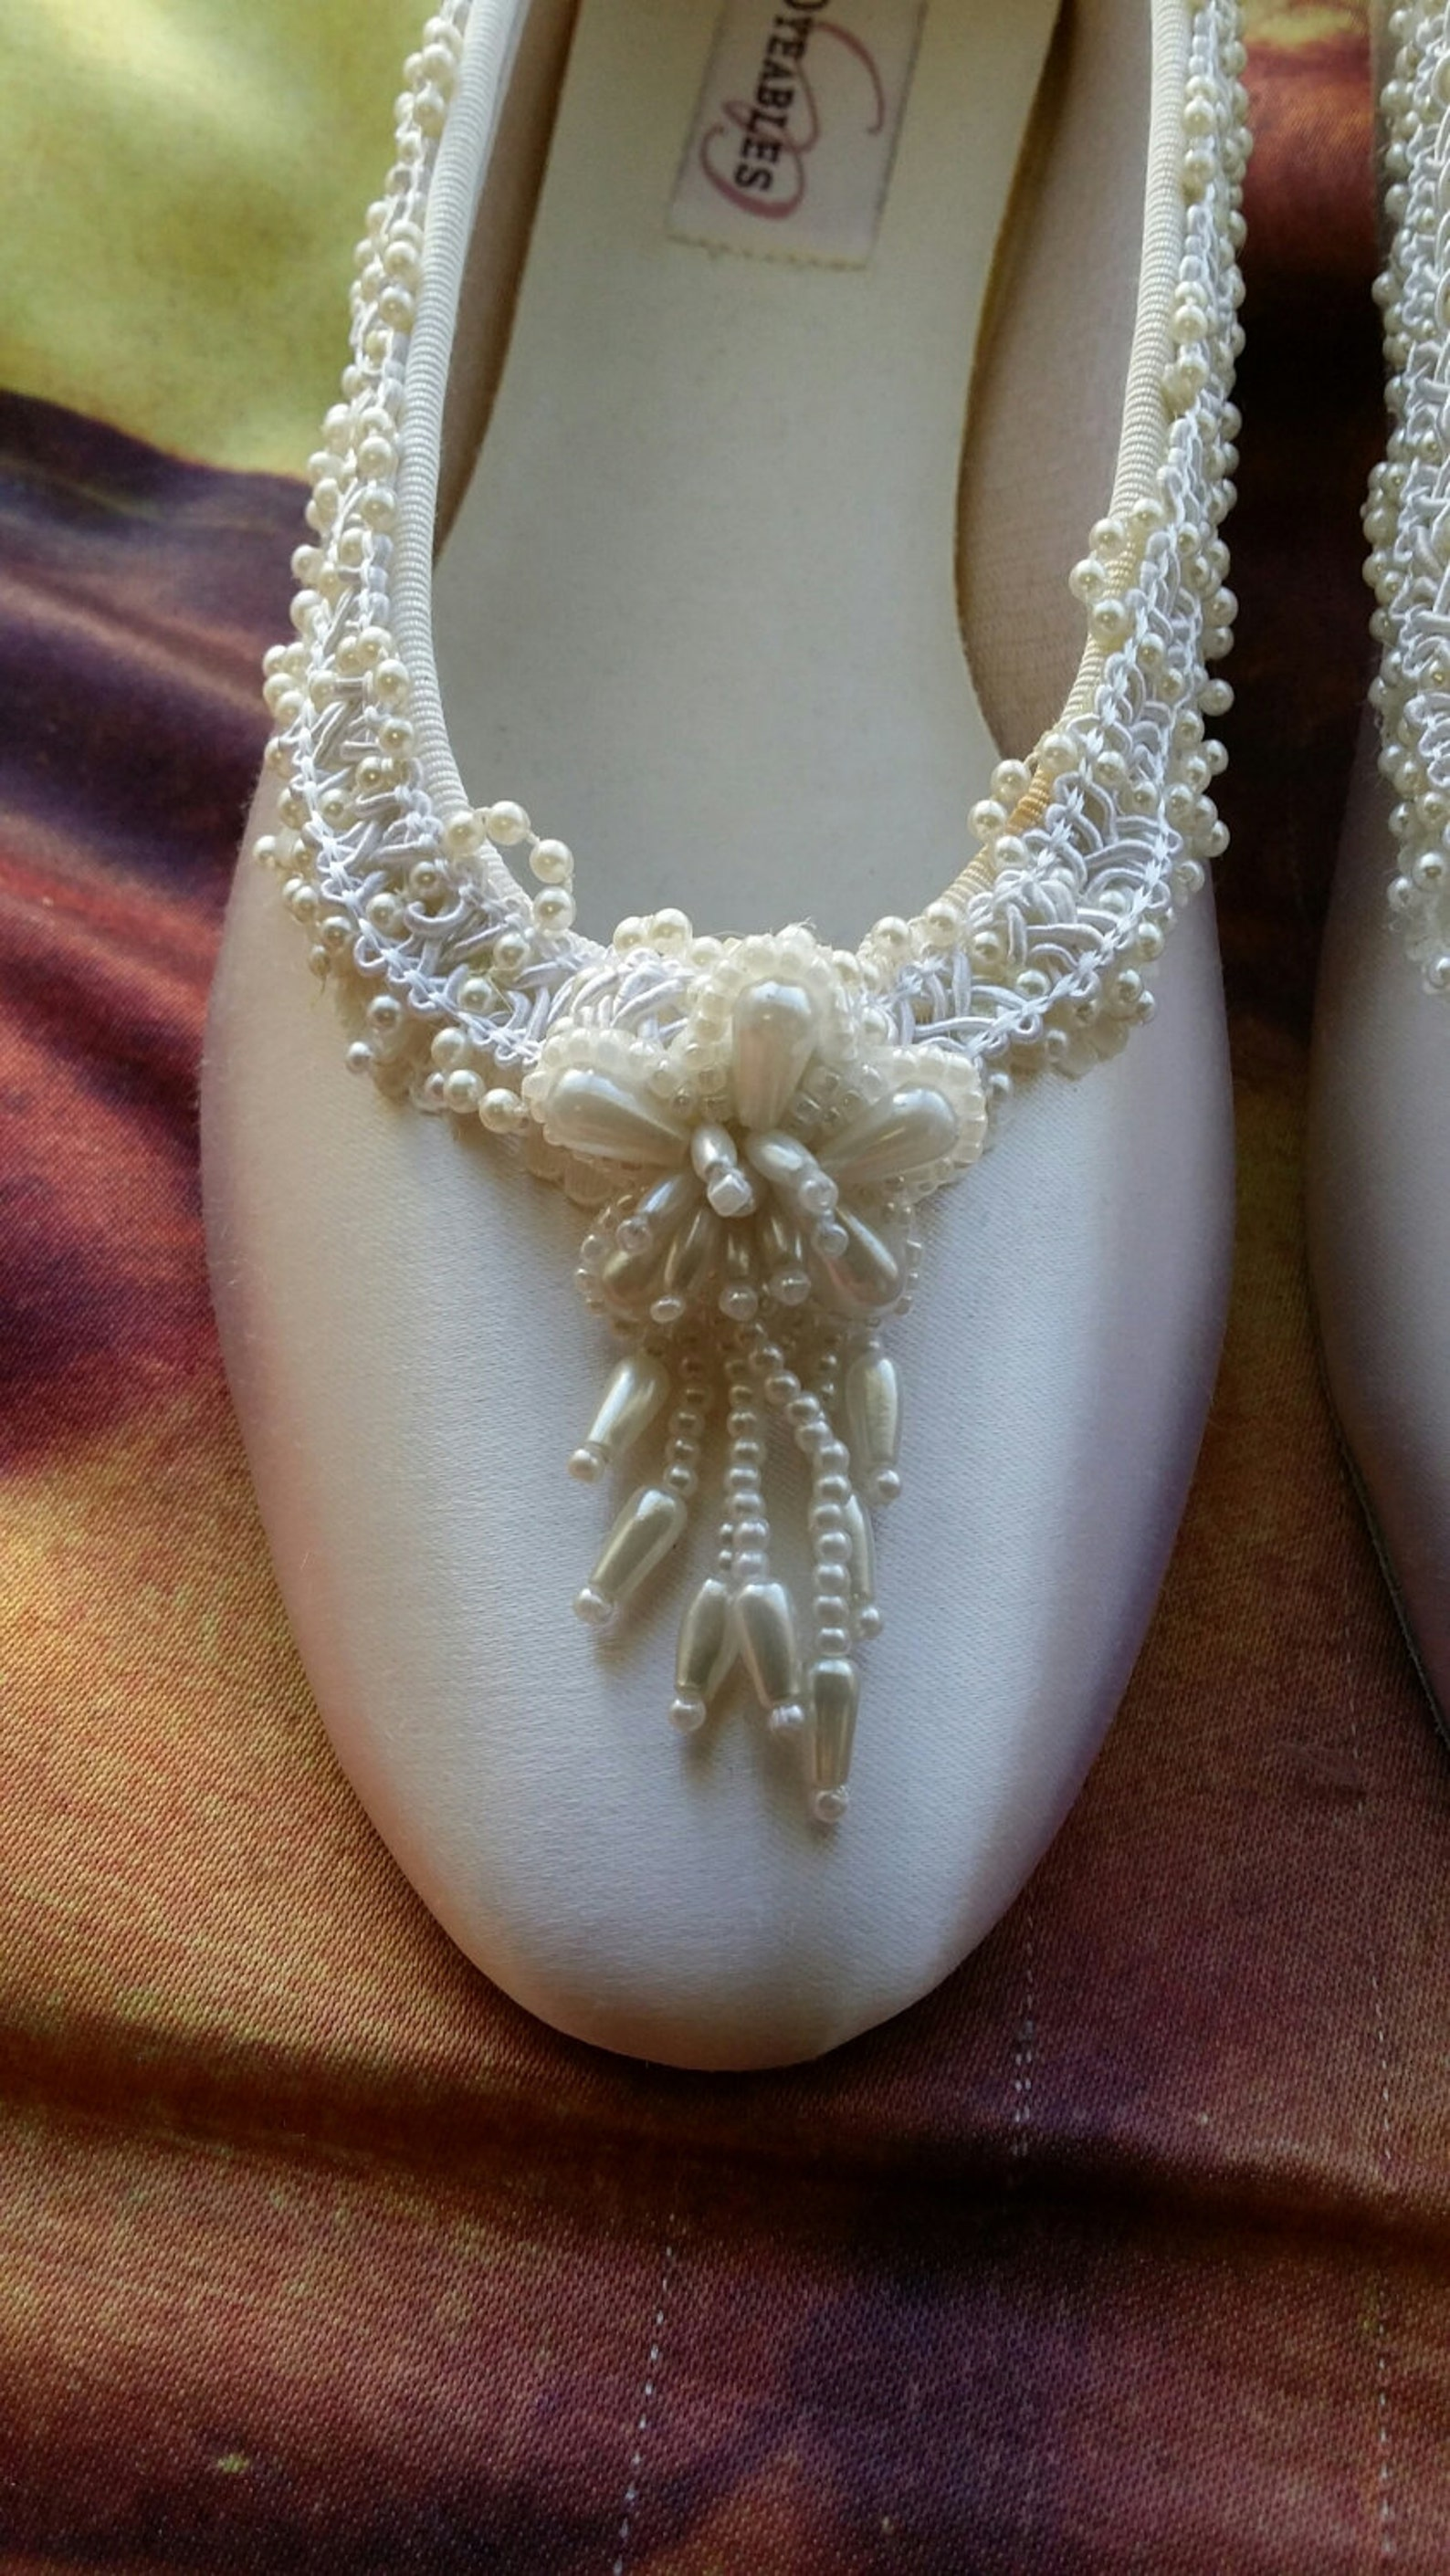 size 9 ballet style slippers offwhite satin w pearls flower,white bridal flats,pearl edging,white flowers,silver,ready to ship,